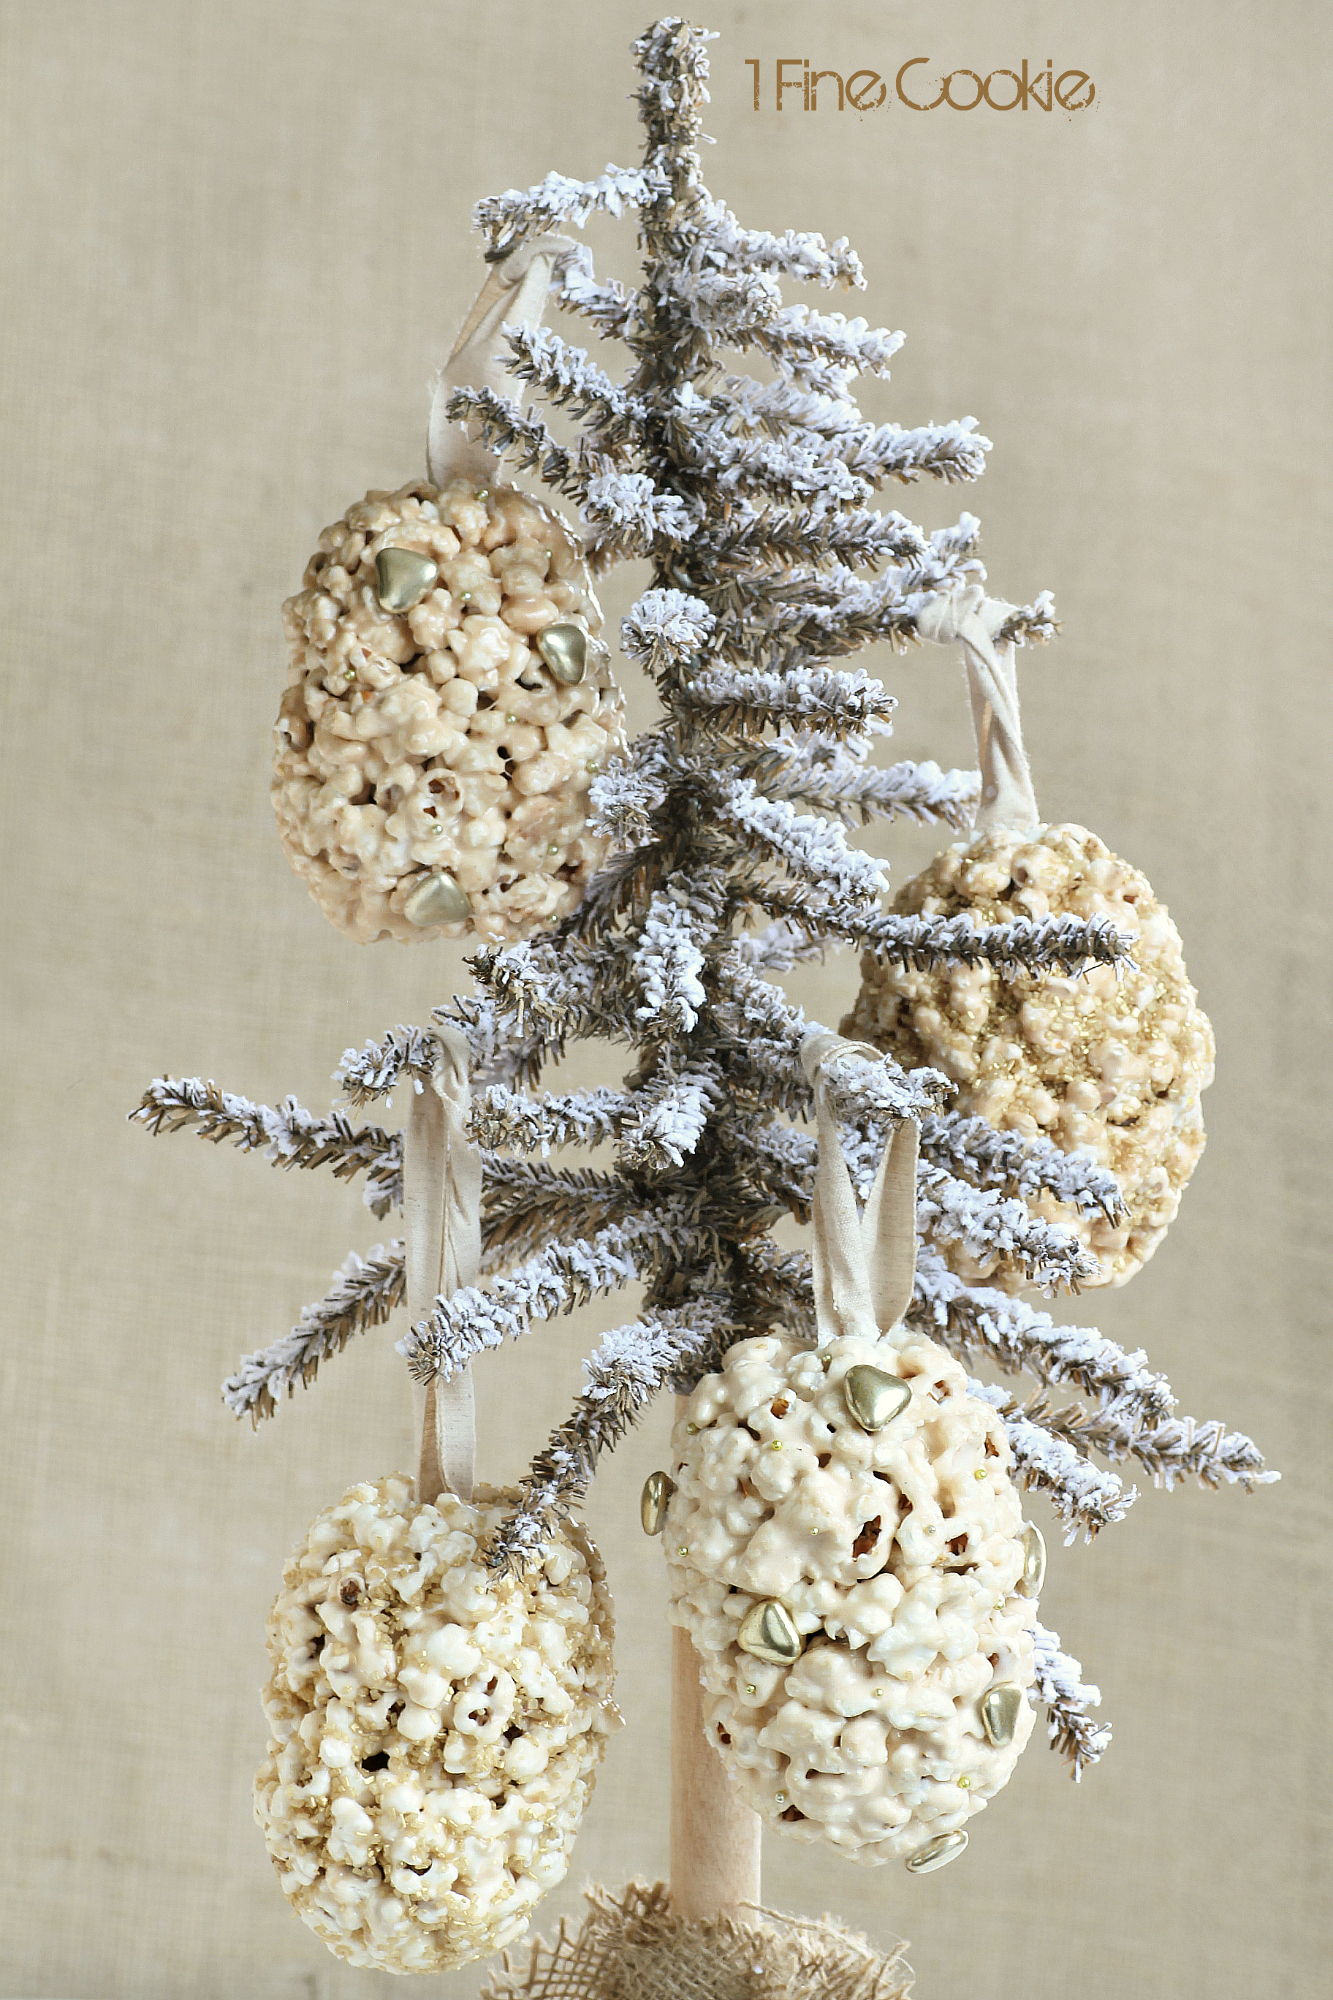 Popcorn Ornament Balls Filled with Holiday Surprises  1 Fine Cookie